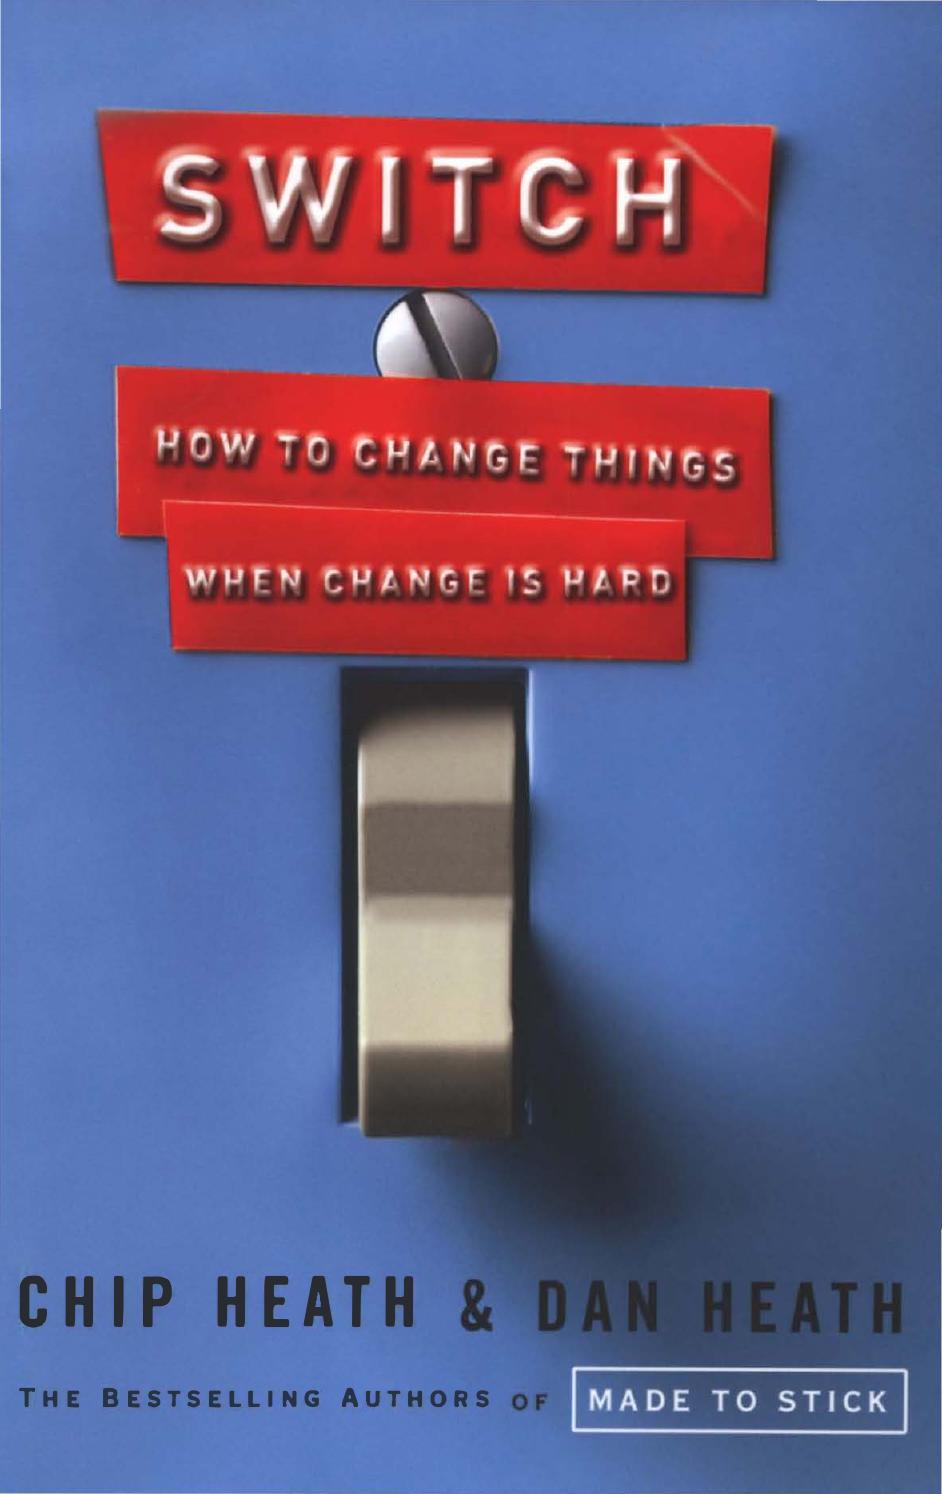 How to change things when change is hard by phuoc luong issuu fandeluxe Images